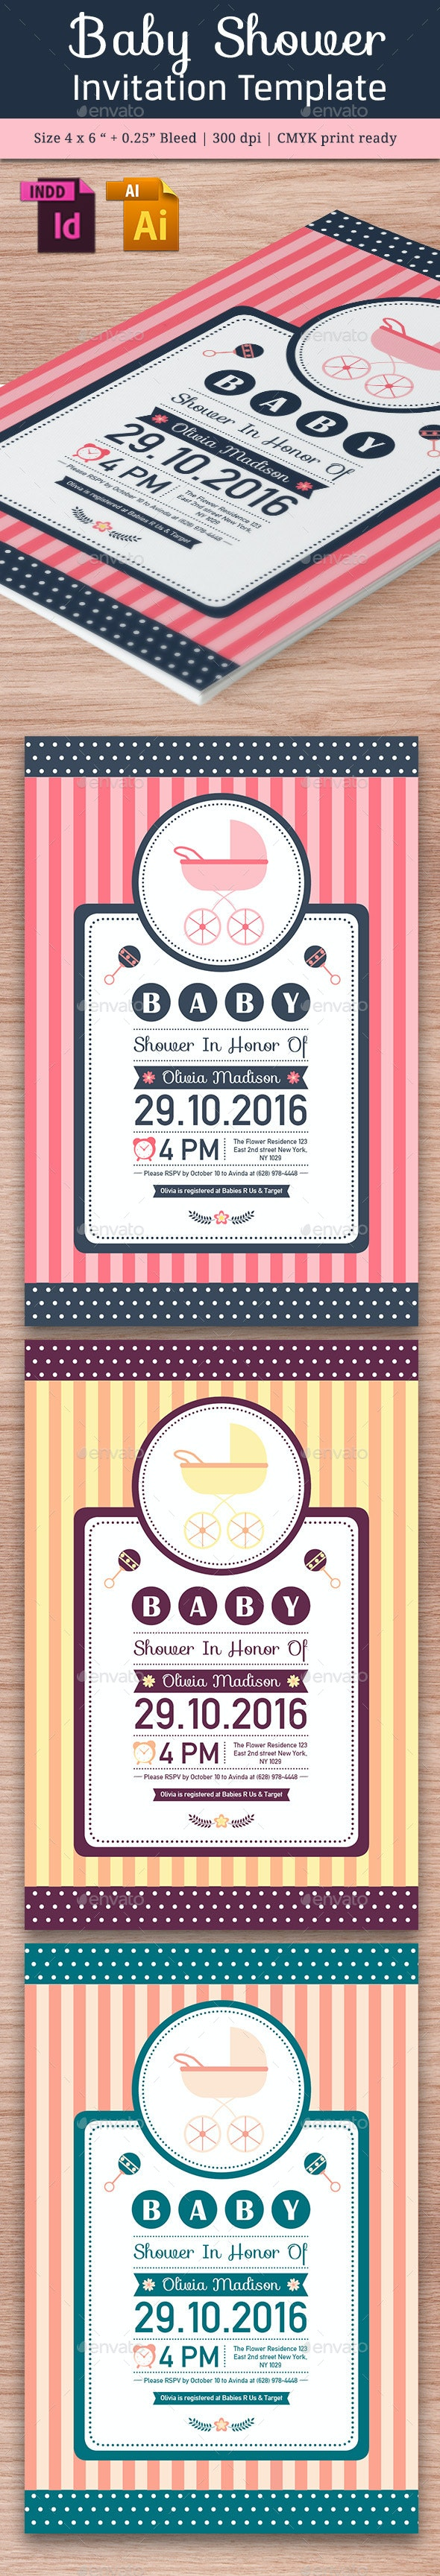 Baby Shower Template - Vol. 13 - Cards & Invites Print Templates